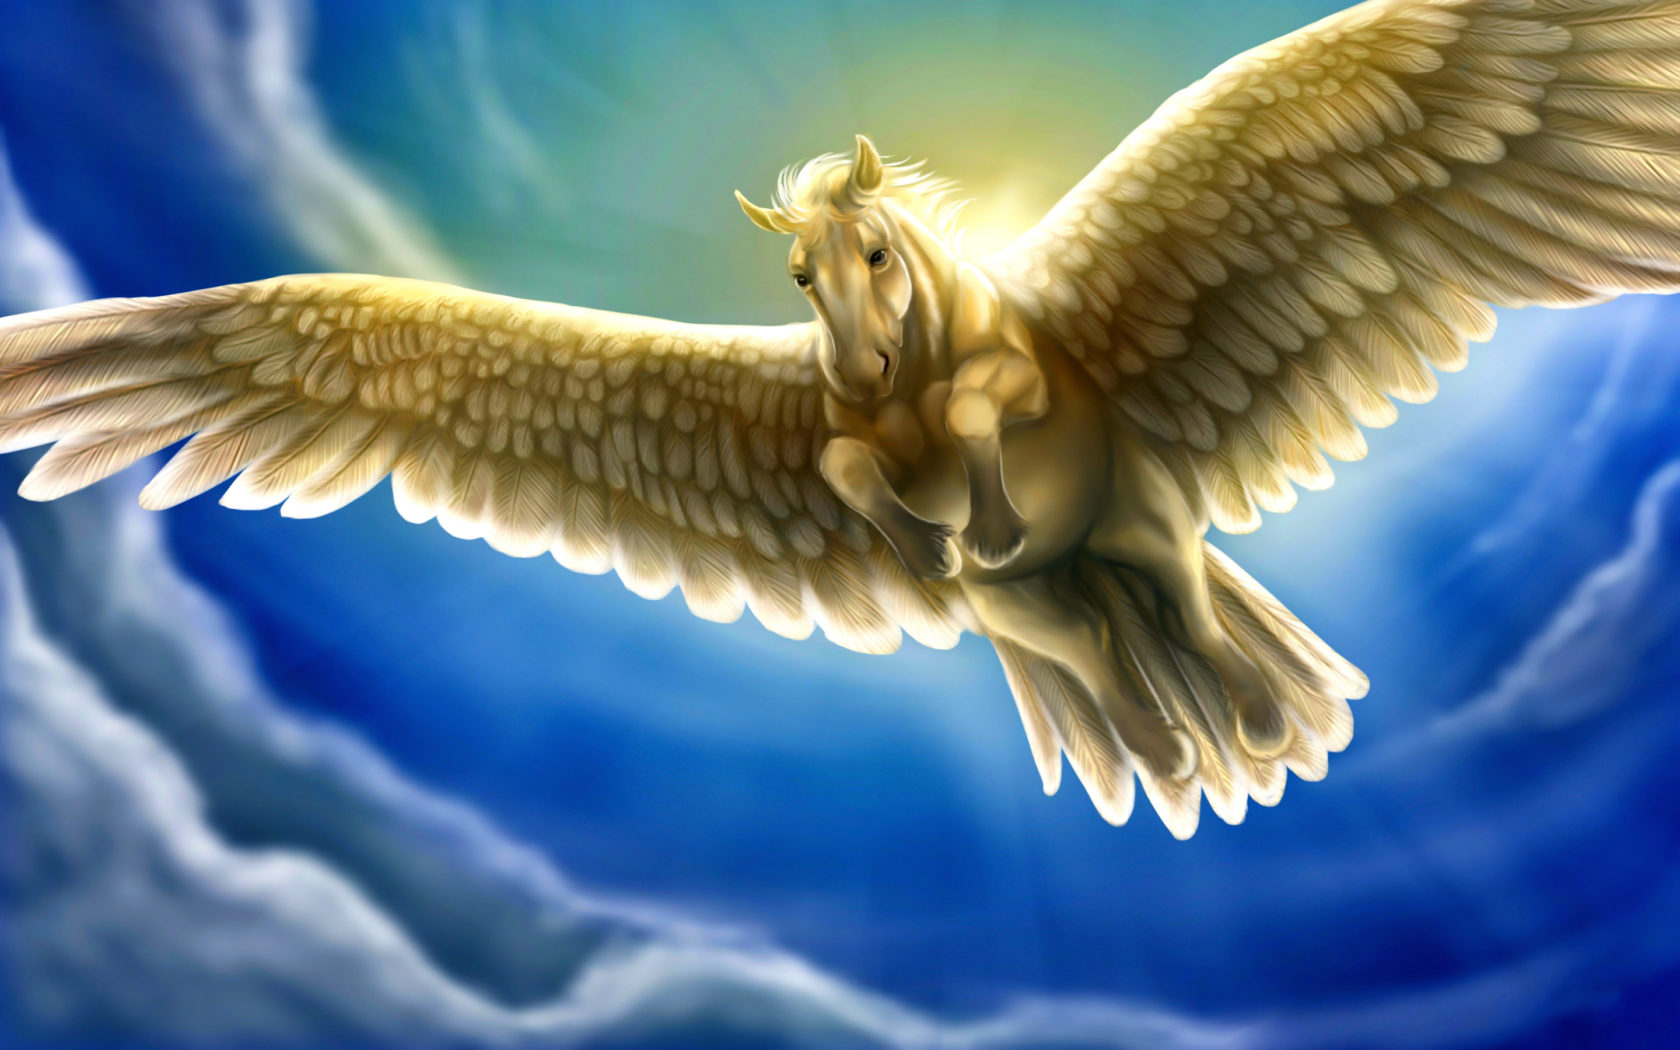 Cute Wallpapers For Phones For Free Heavenly White Horse With Wings Pegasus Fantasy Sky Blue